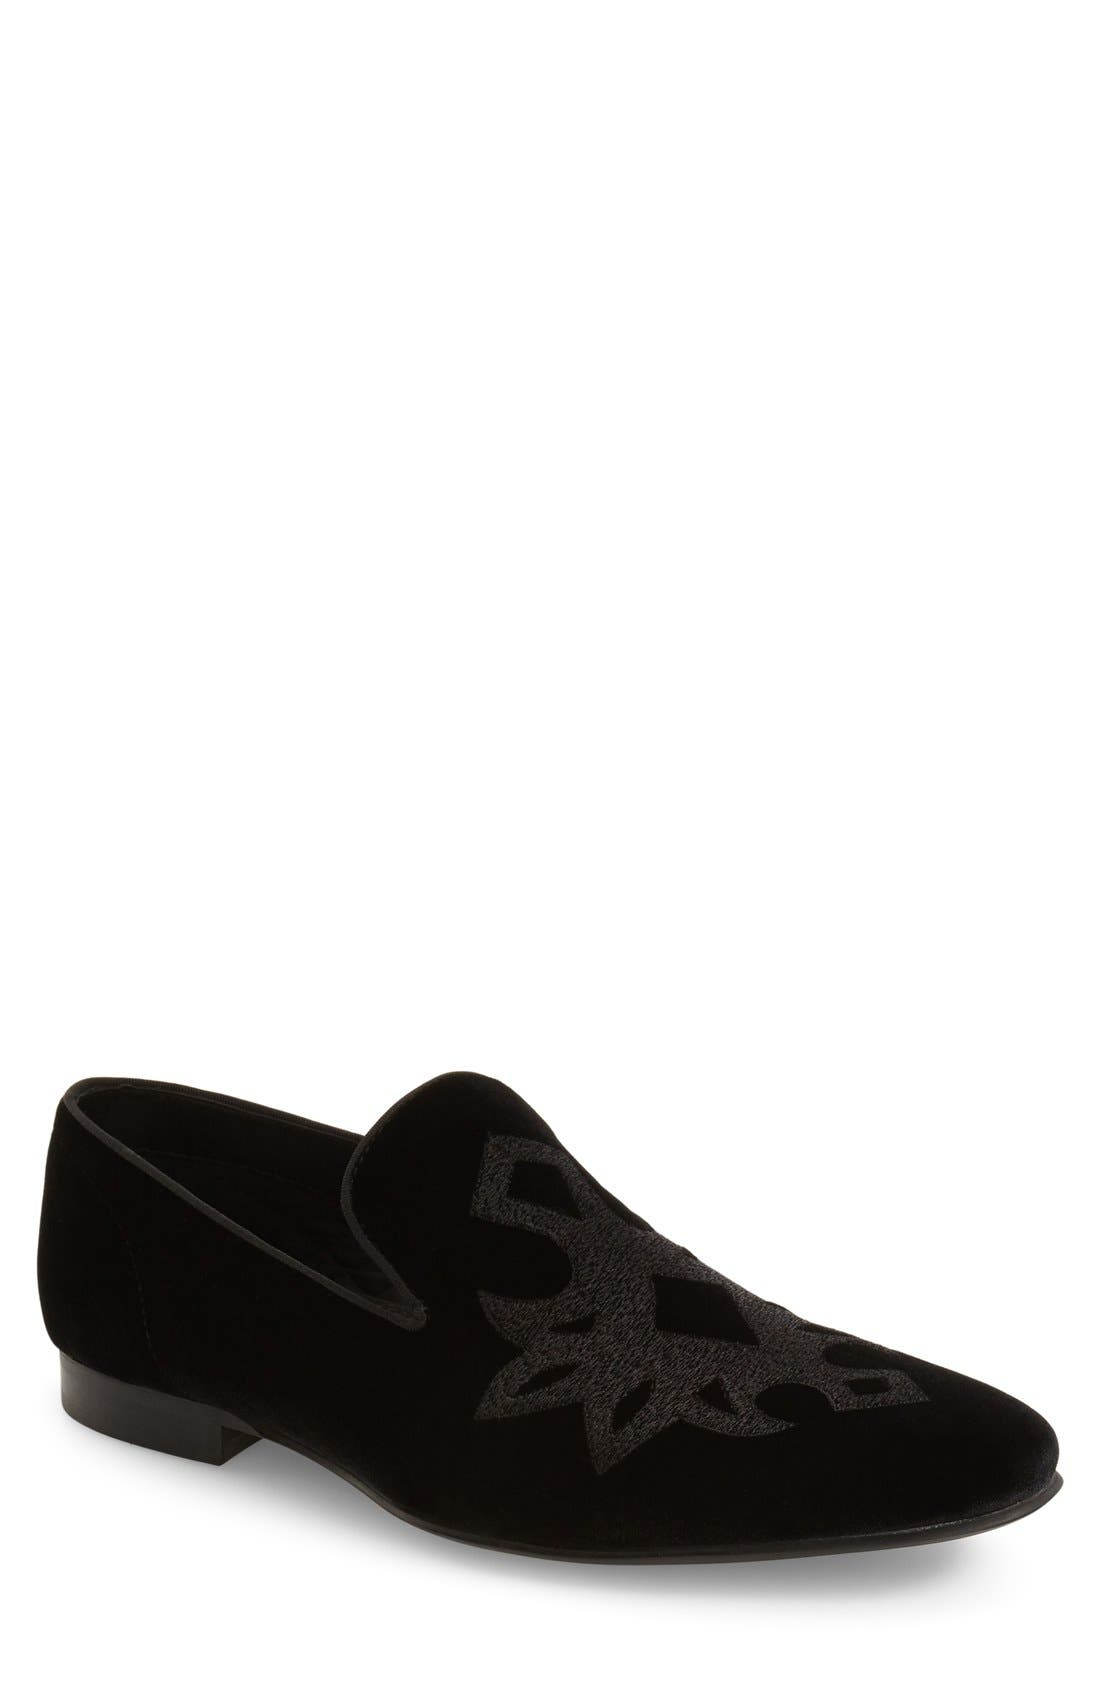 Lorax Venetian Loafer,                             Alternate thumbnail 5, color,                             BLACK VELVET